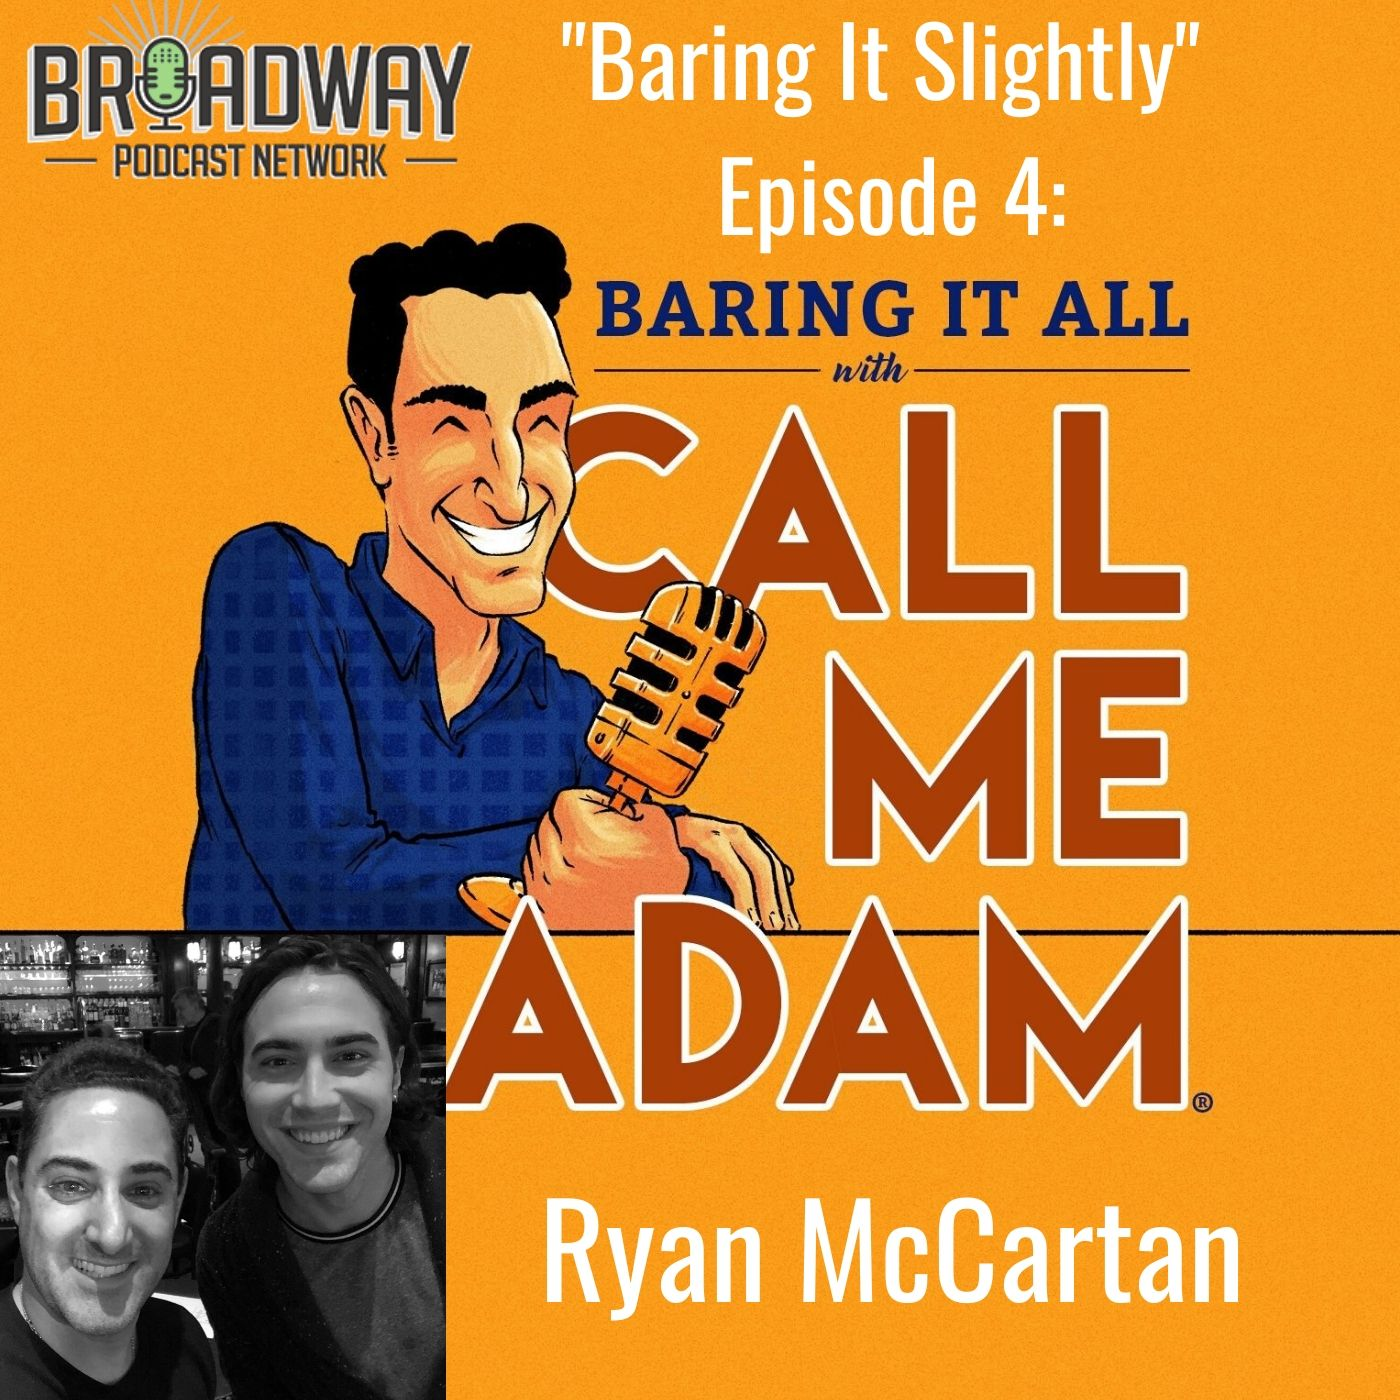 Baring It All With Call Me Adam Baring It Slighty Ep 4 Ryan McCartan